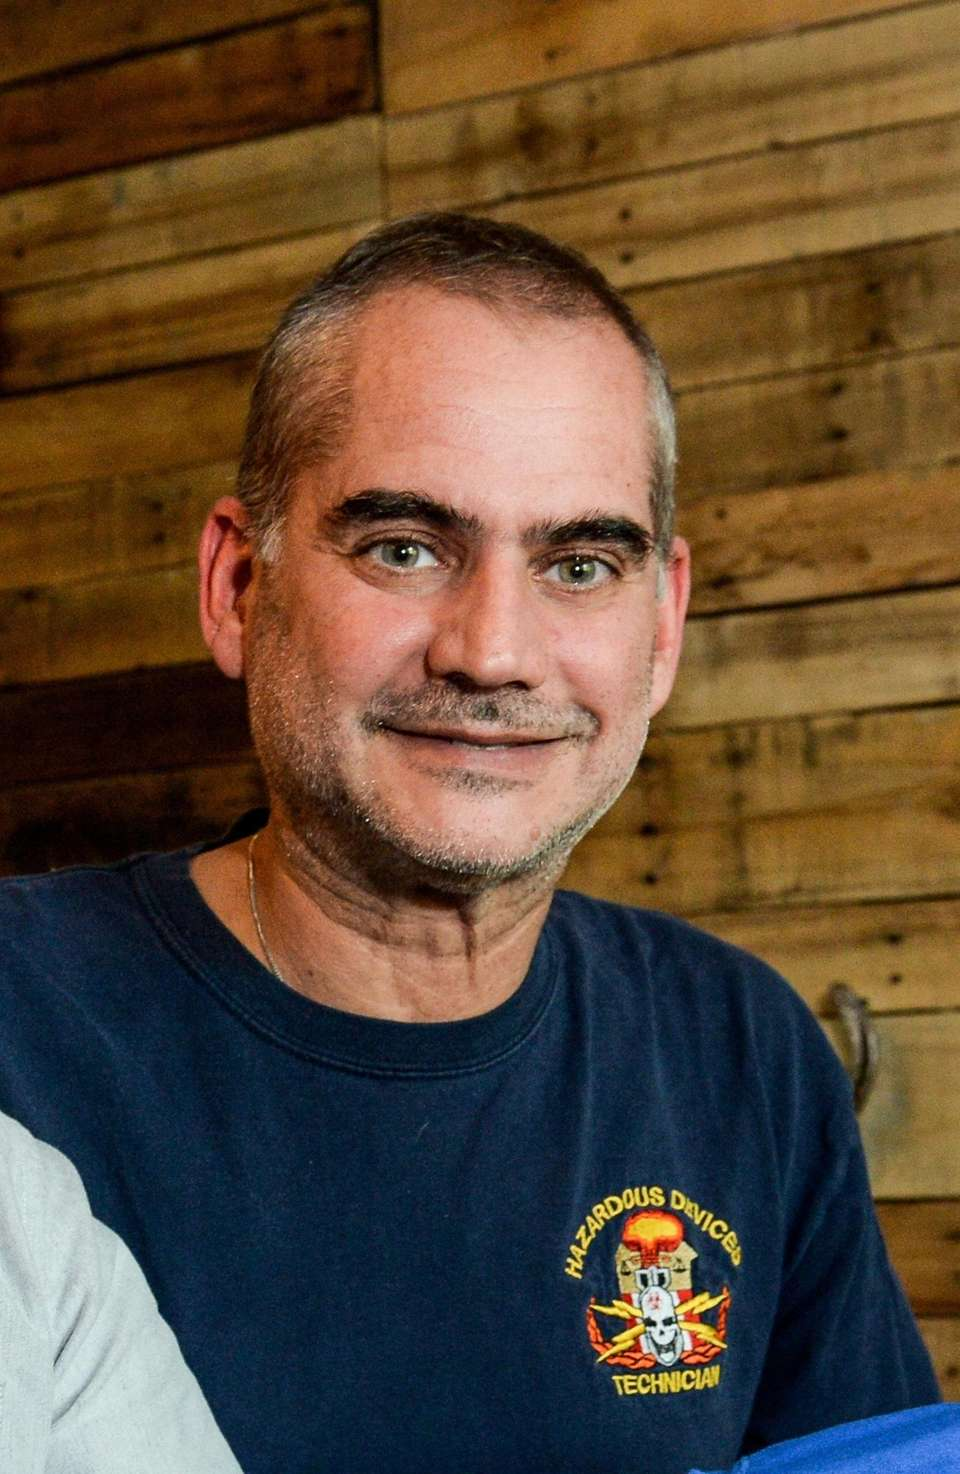 Luis Alvarez, a retired NYPD officer with 9/11